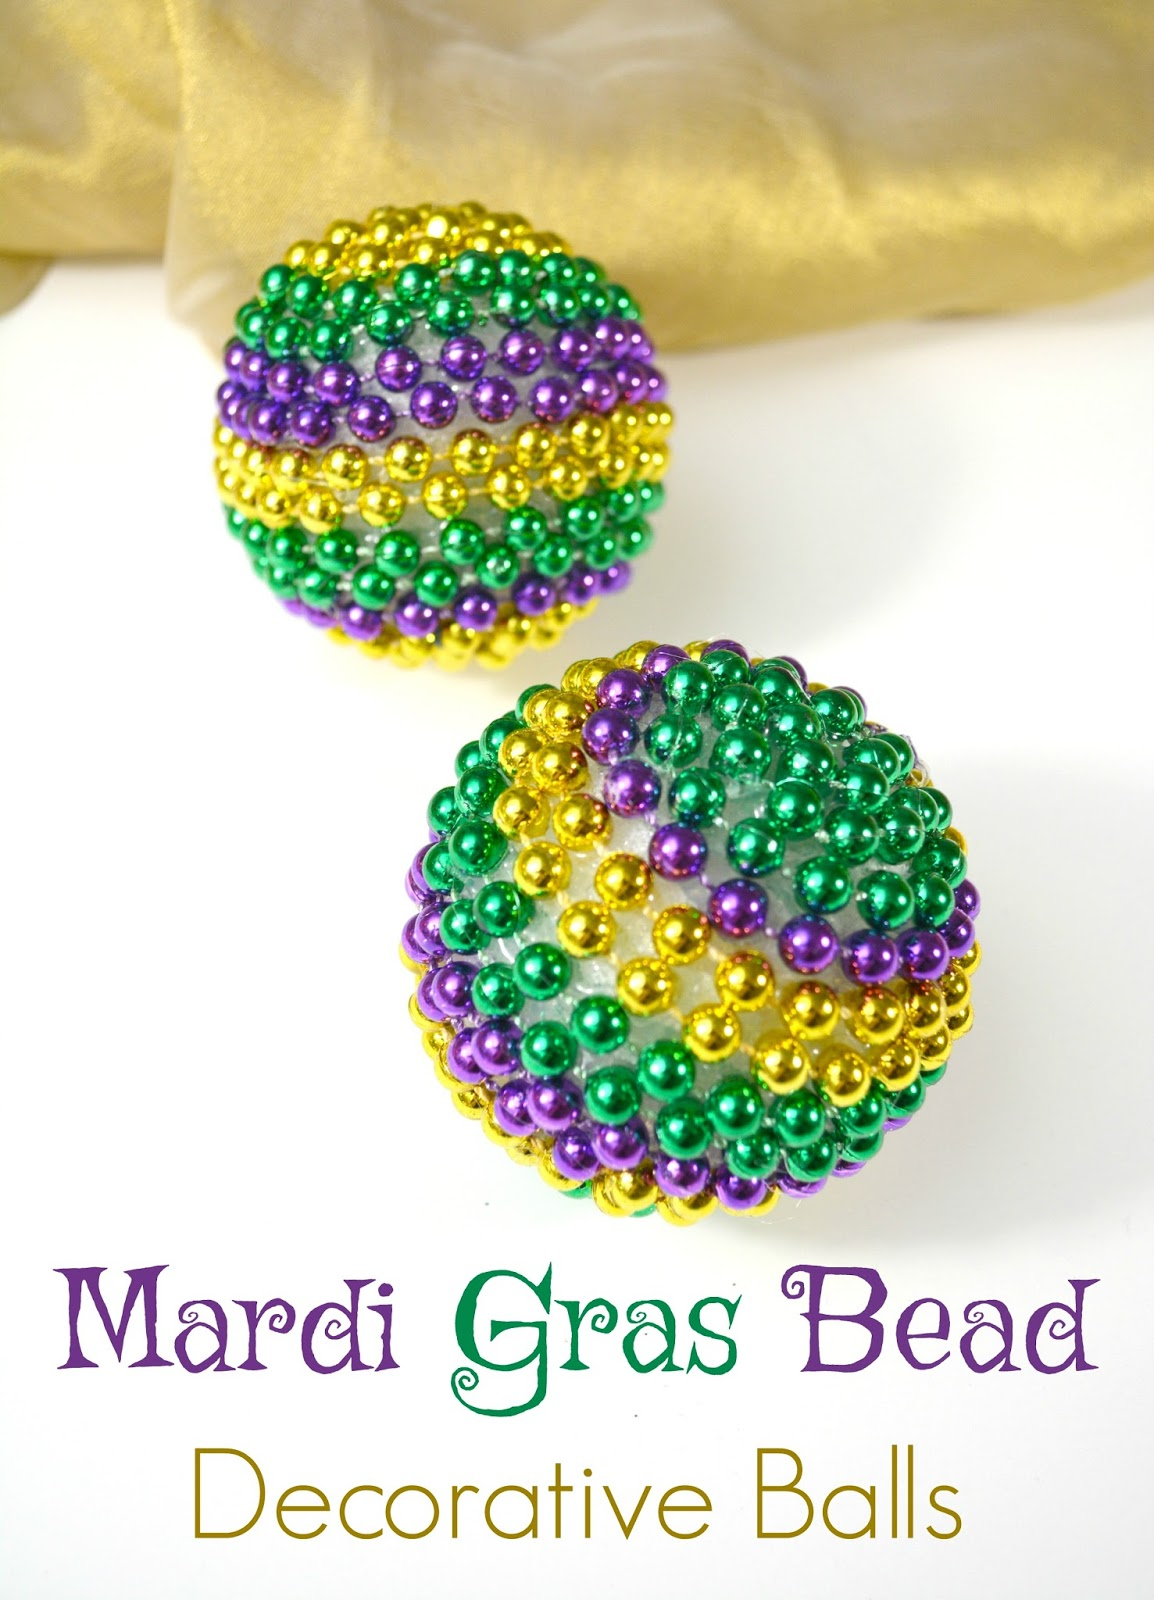 DIY Mardi Gras Bead Crafts February 26, by Ashley Bond Just about the time you finally get rid of all the leftover Mardi Gras beads and the dog chews the last plush toy, it's Mardi Gras all over again.